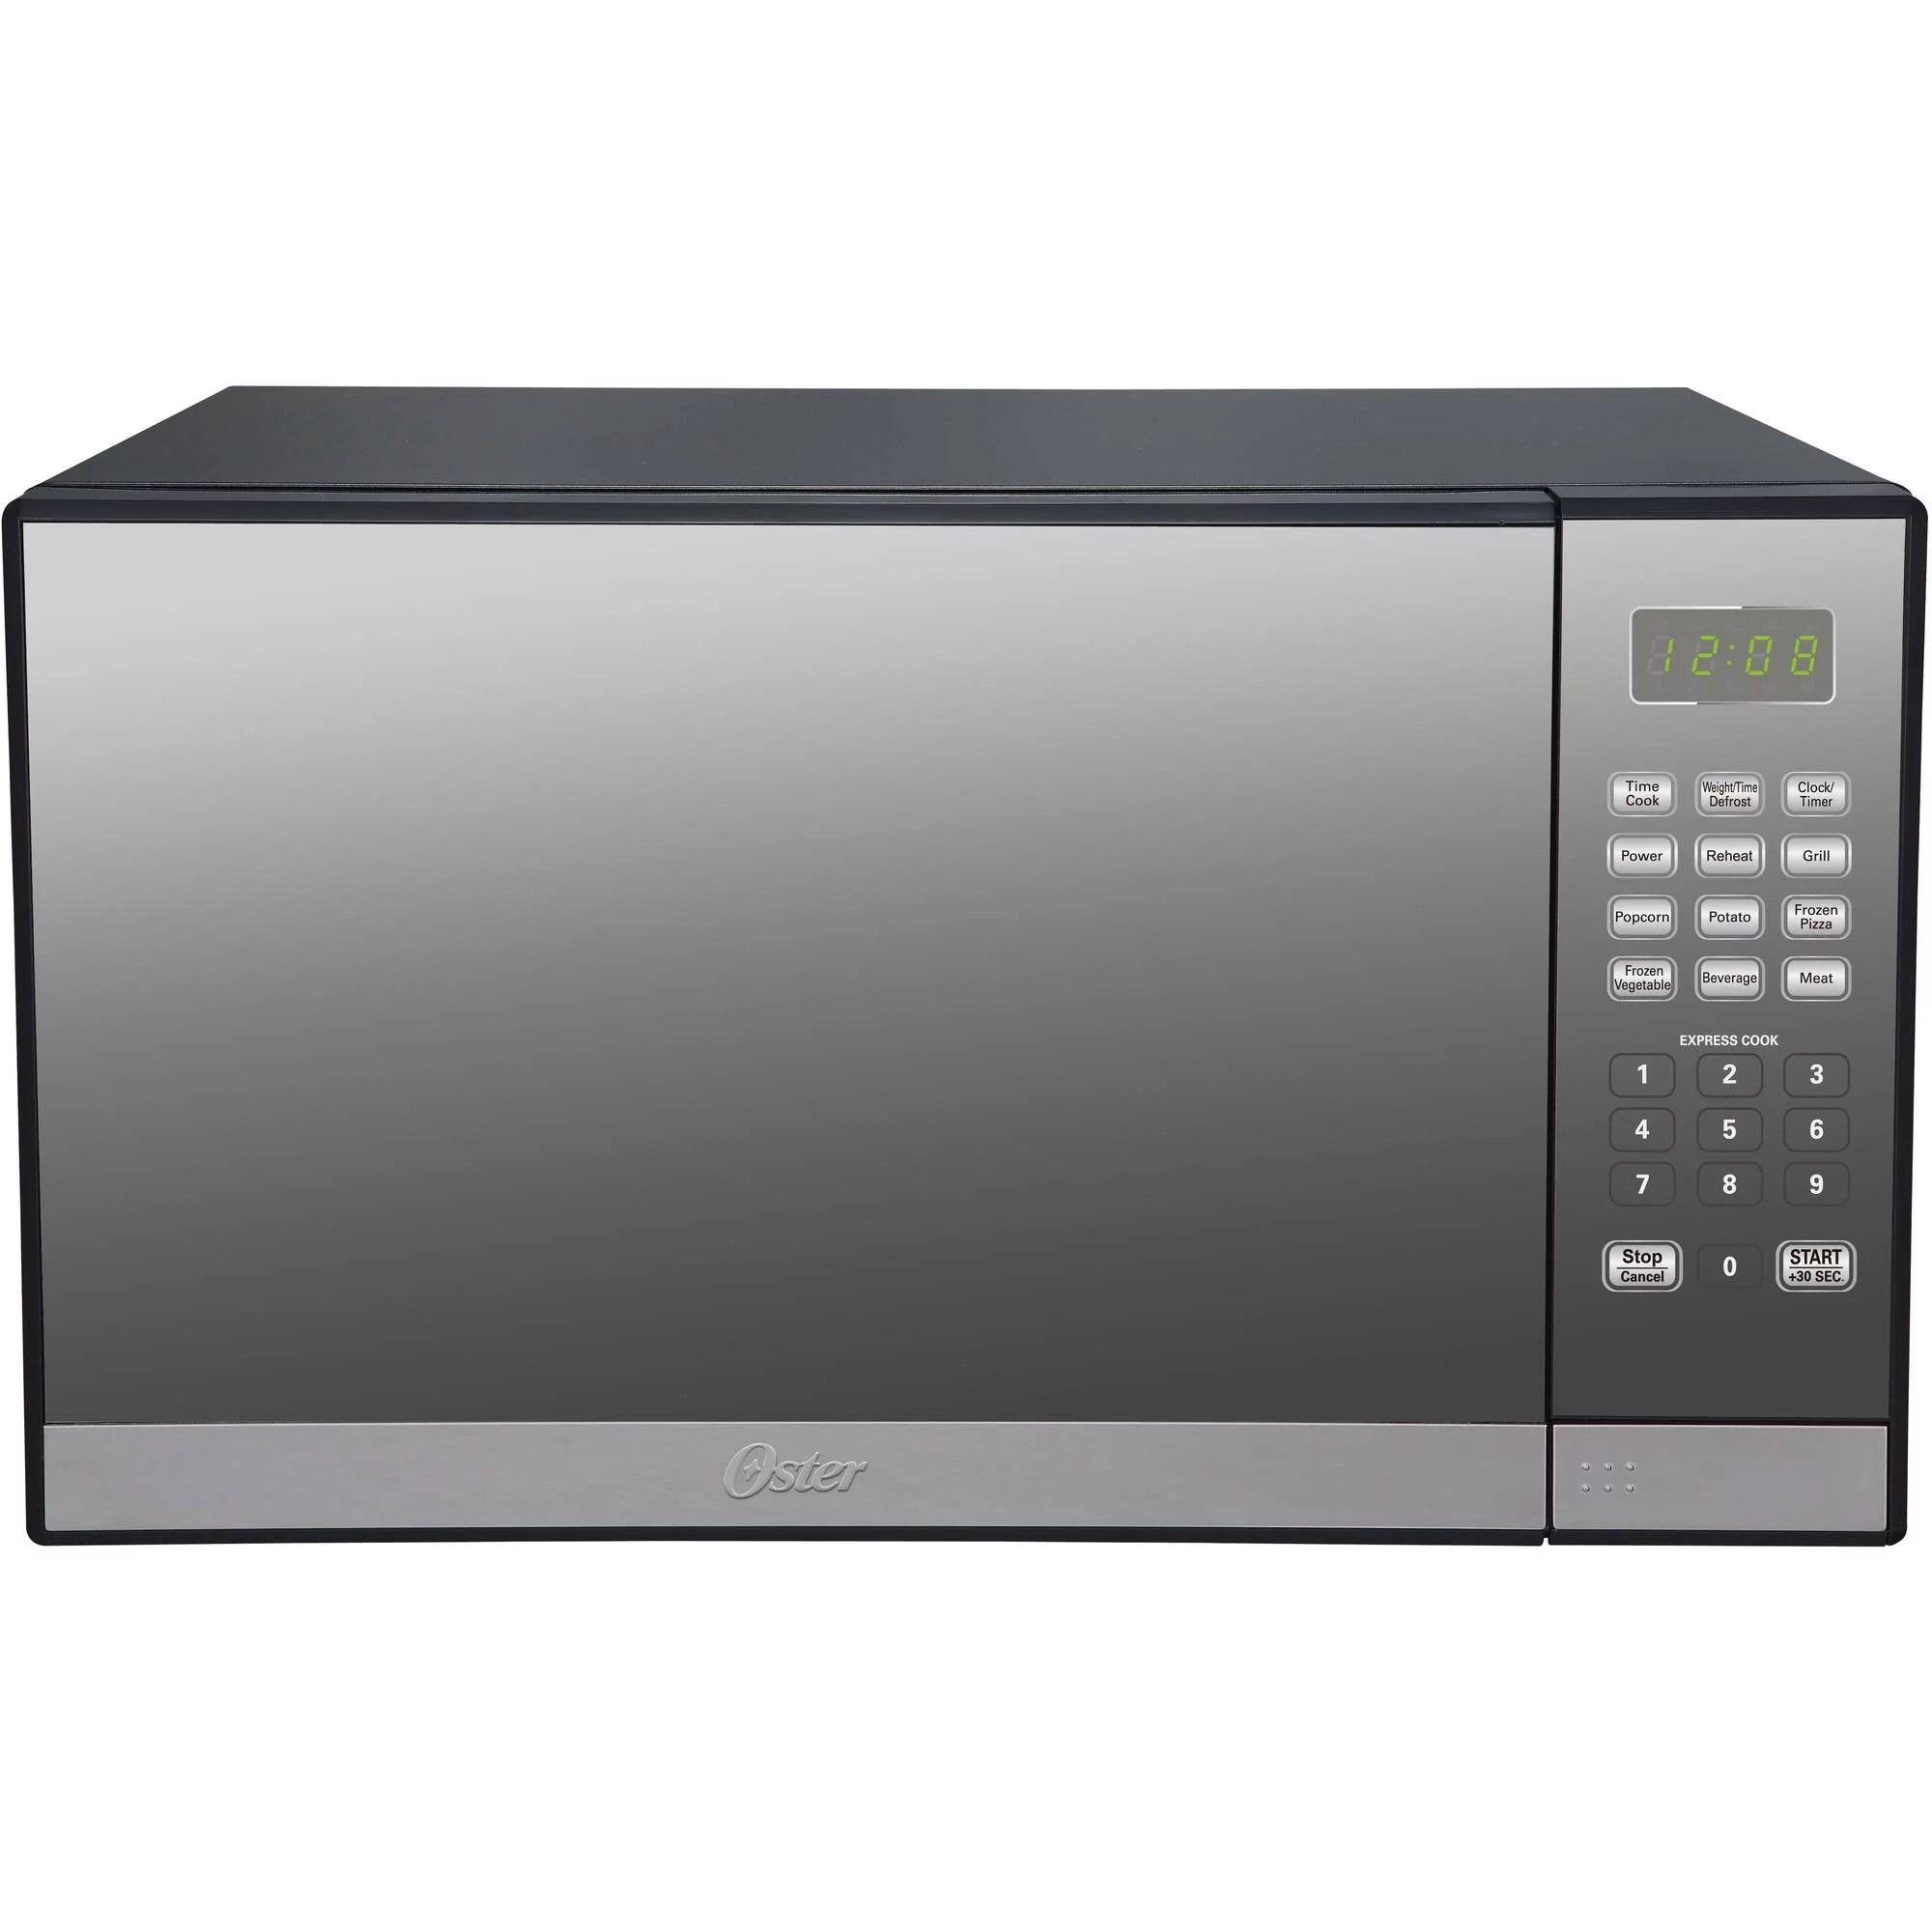 oster 1 3 cu ft stainless steel with mirror finish microwave oven with grill walmart com